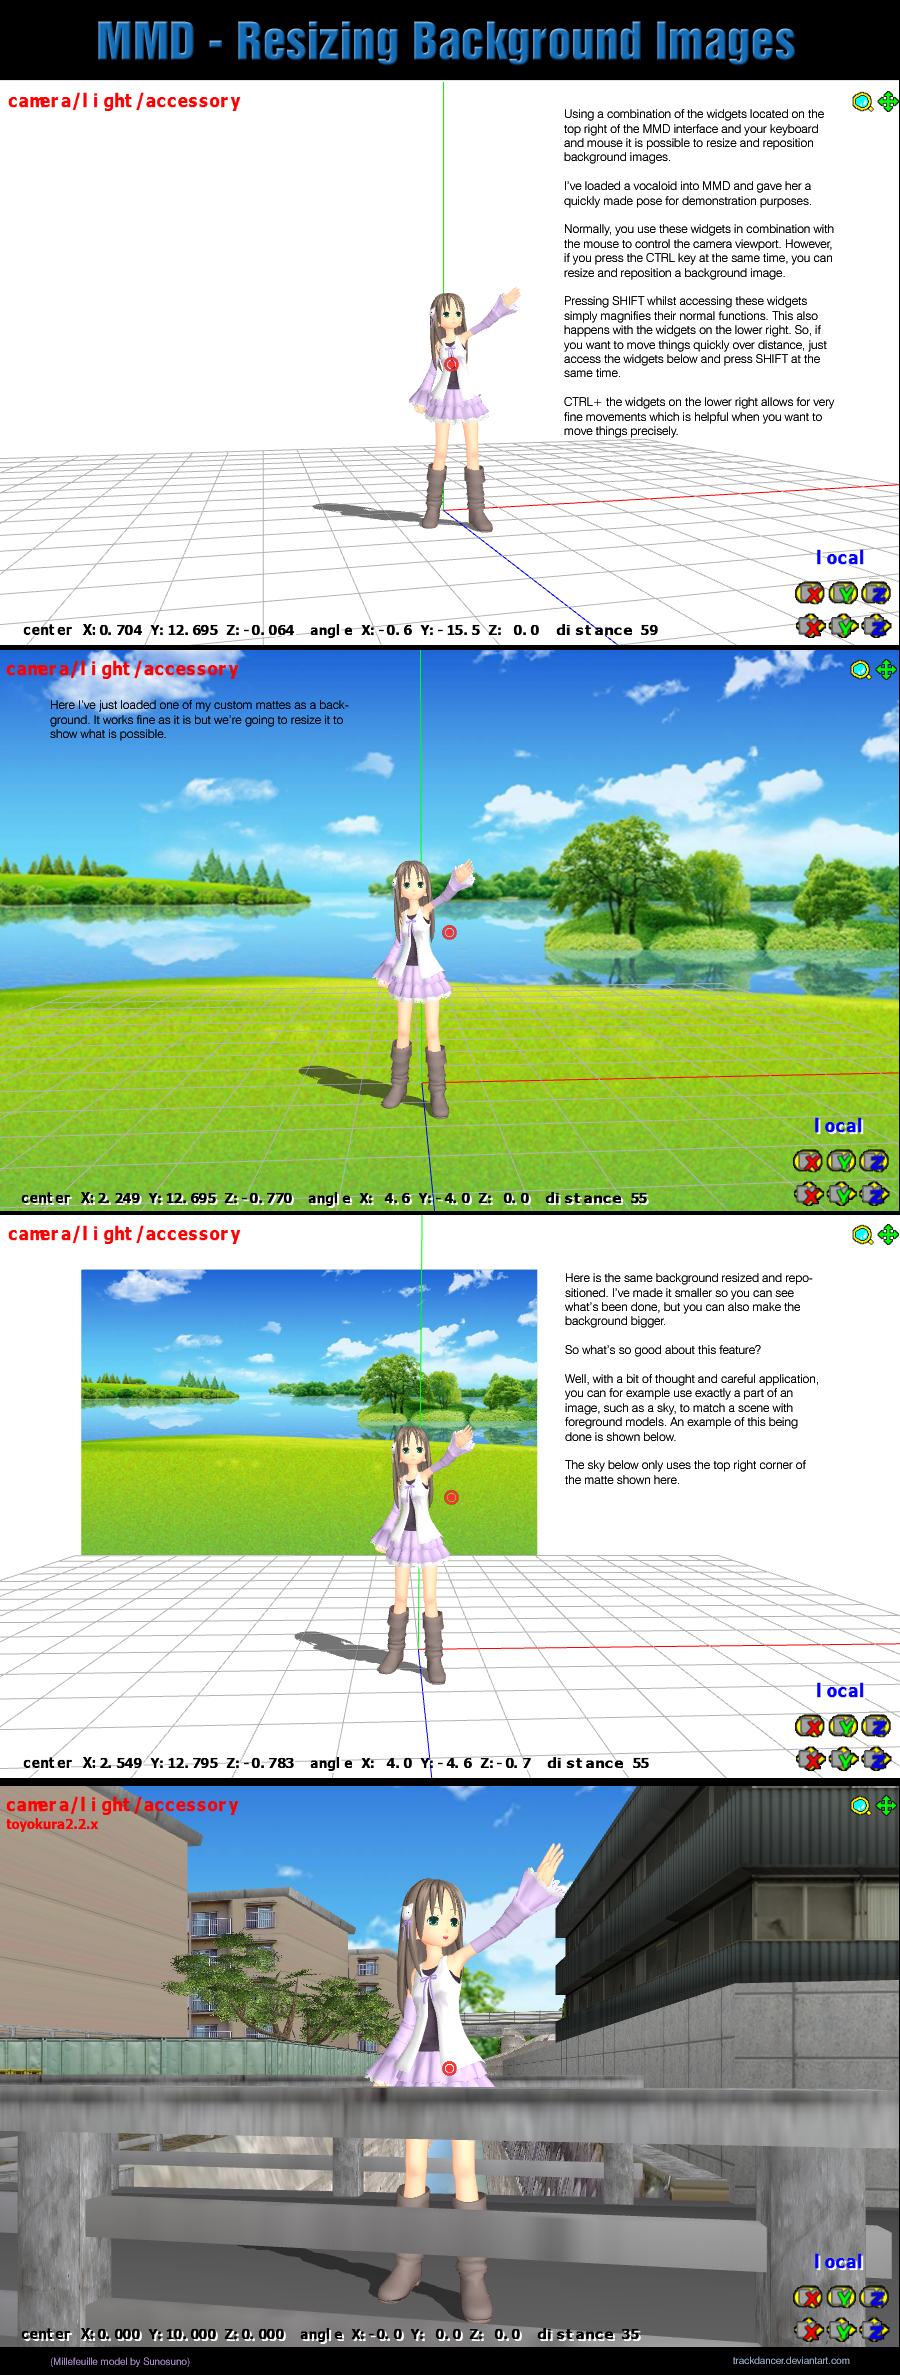 MMD Resizing Background Images Tutorial by Trackdancer